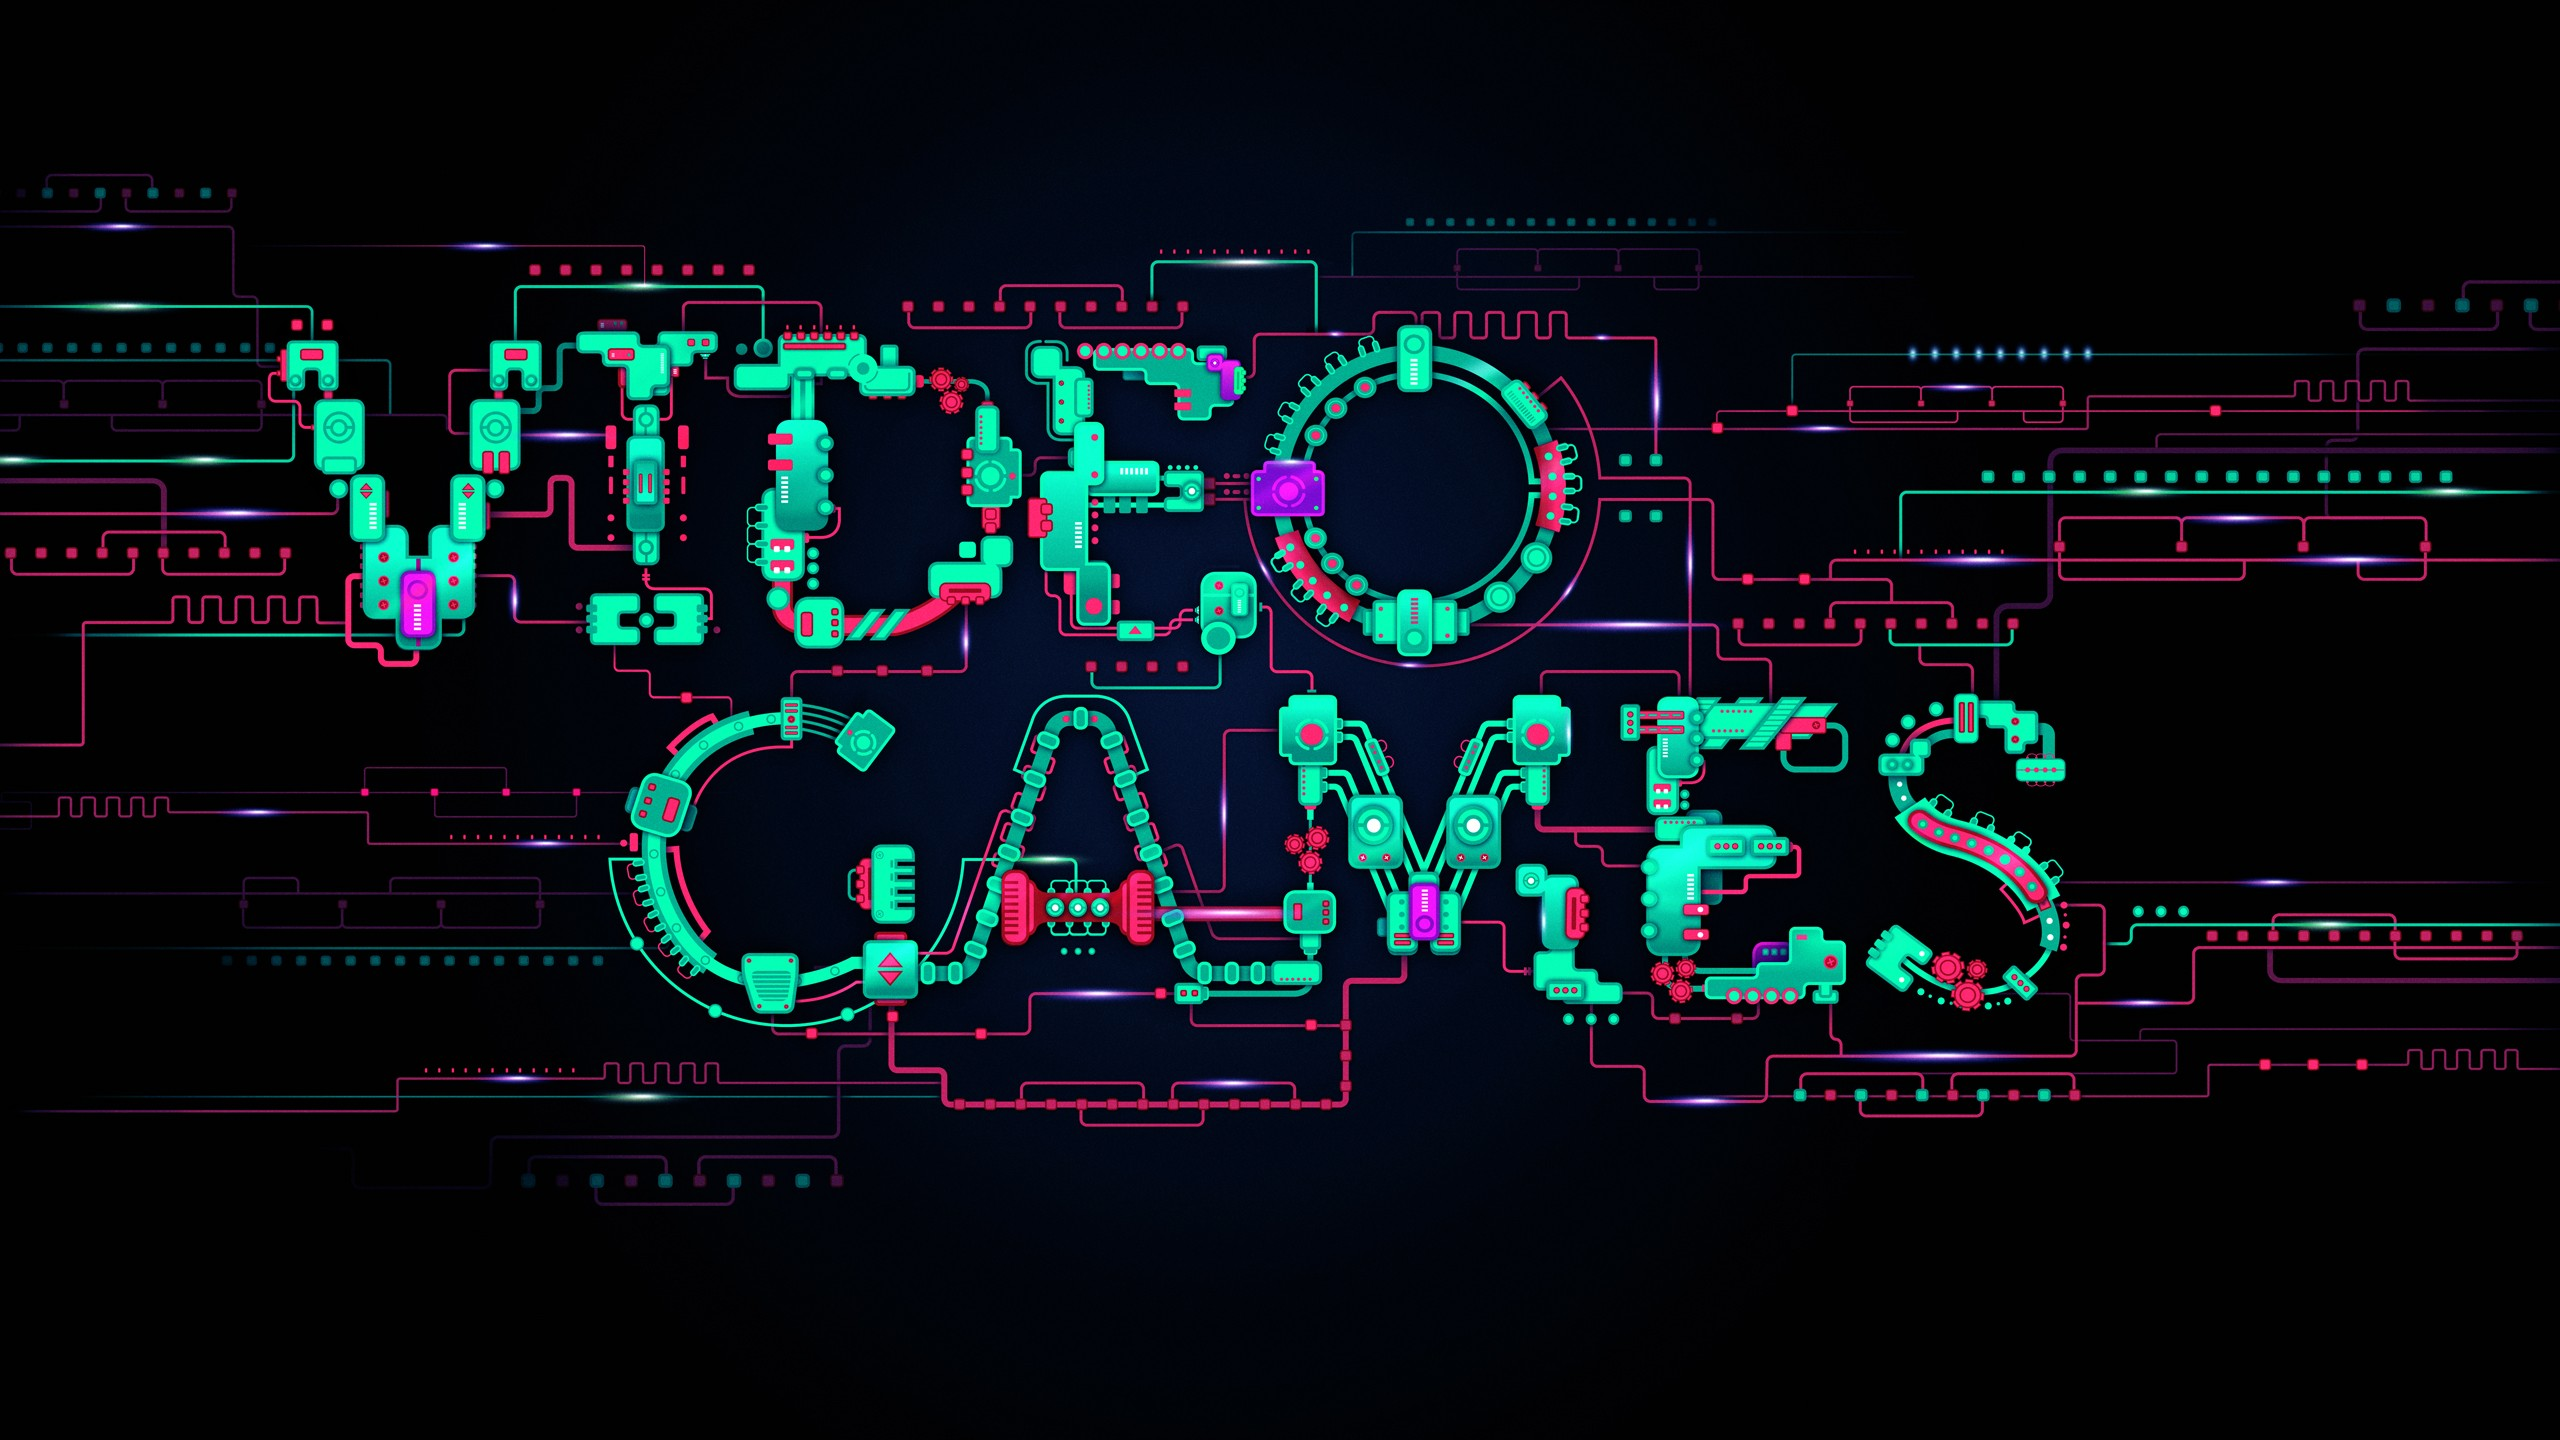 Video Games Gamer Wallpaper Pc Pictures To Pin On